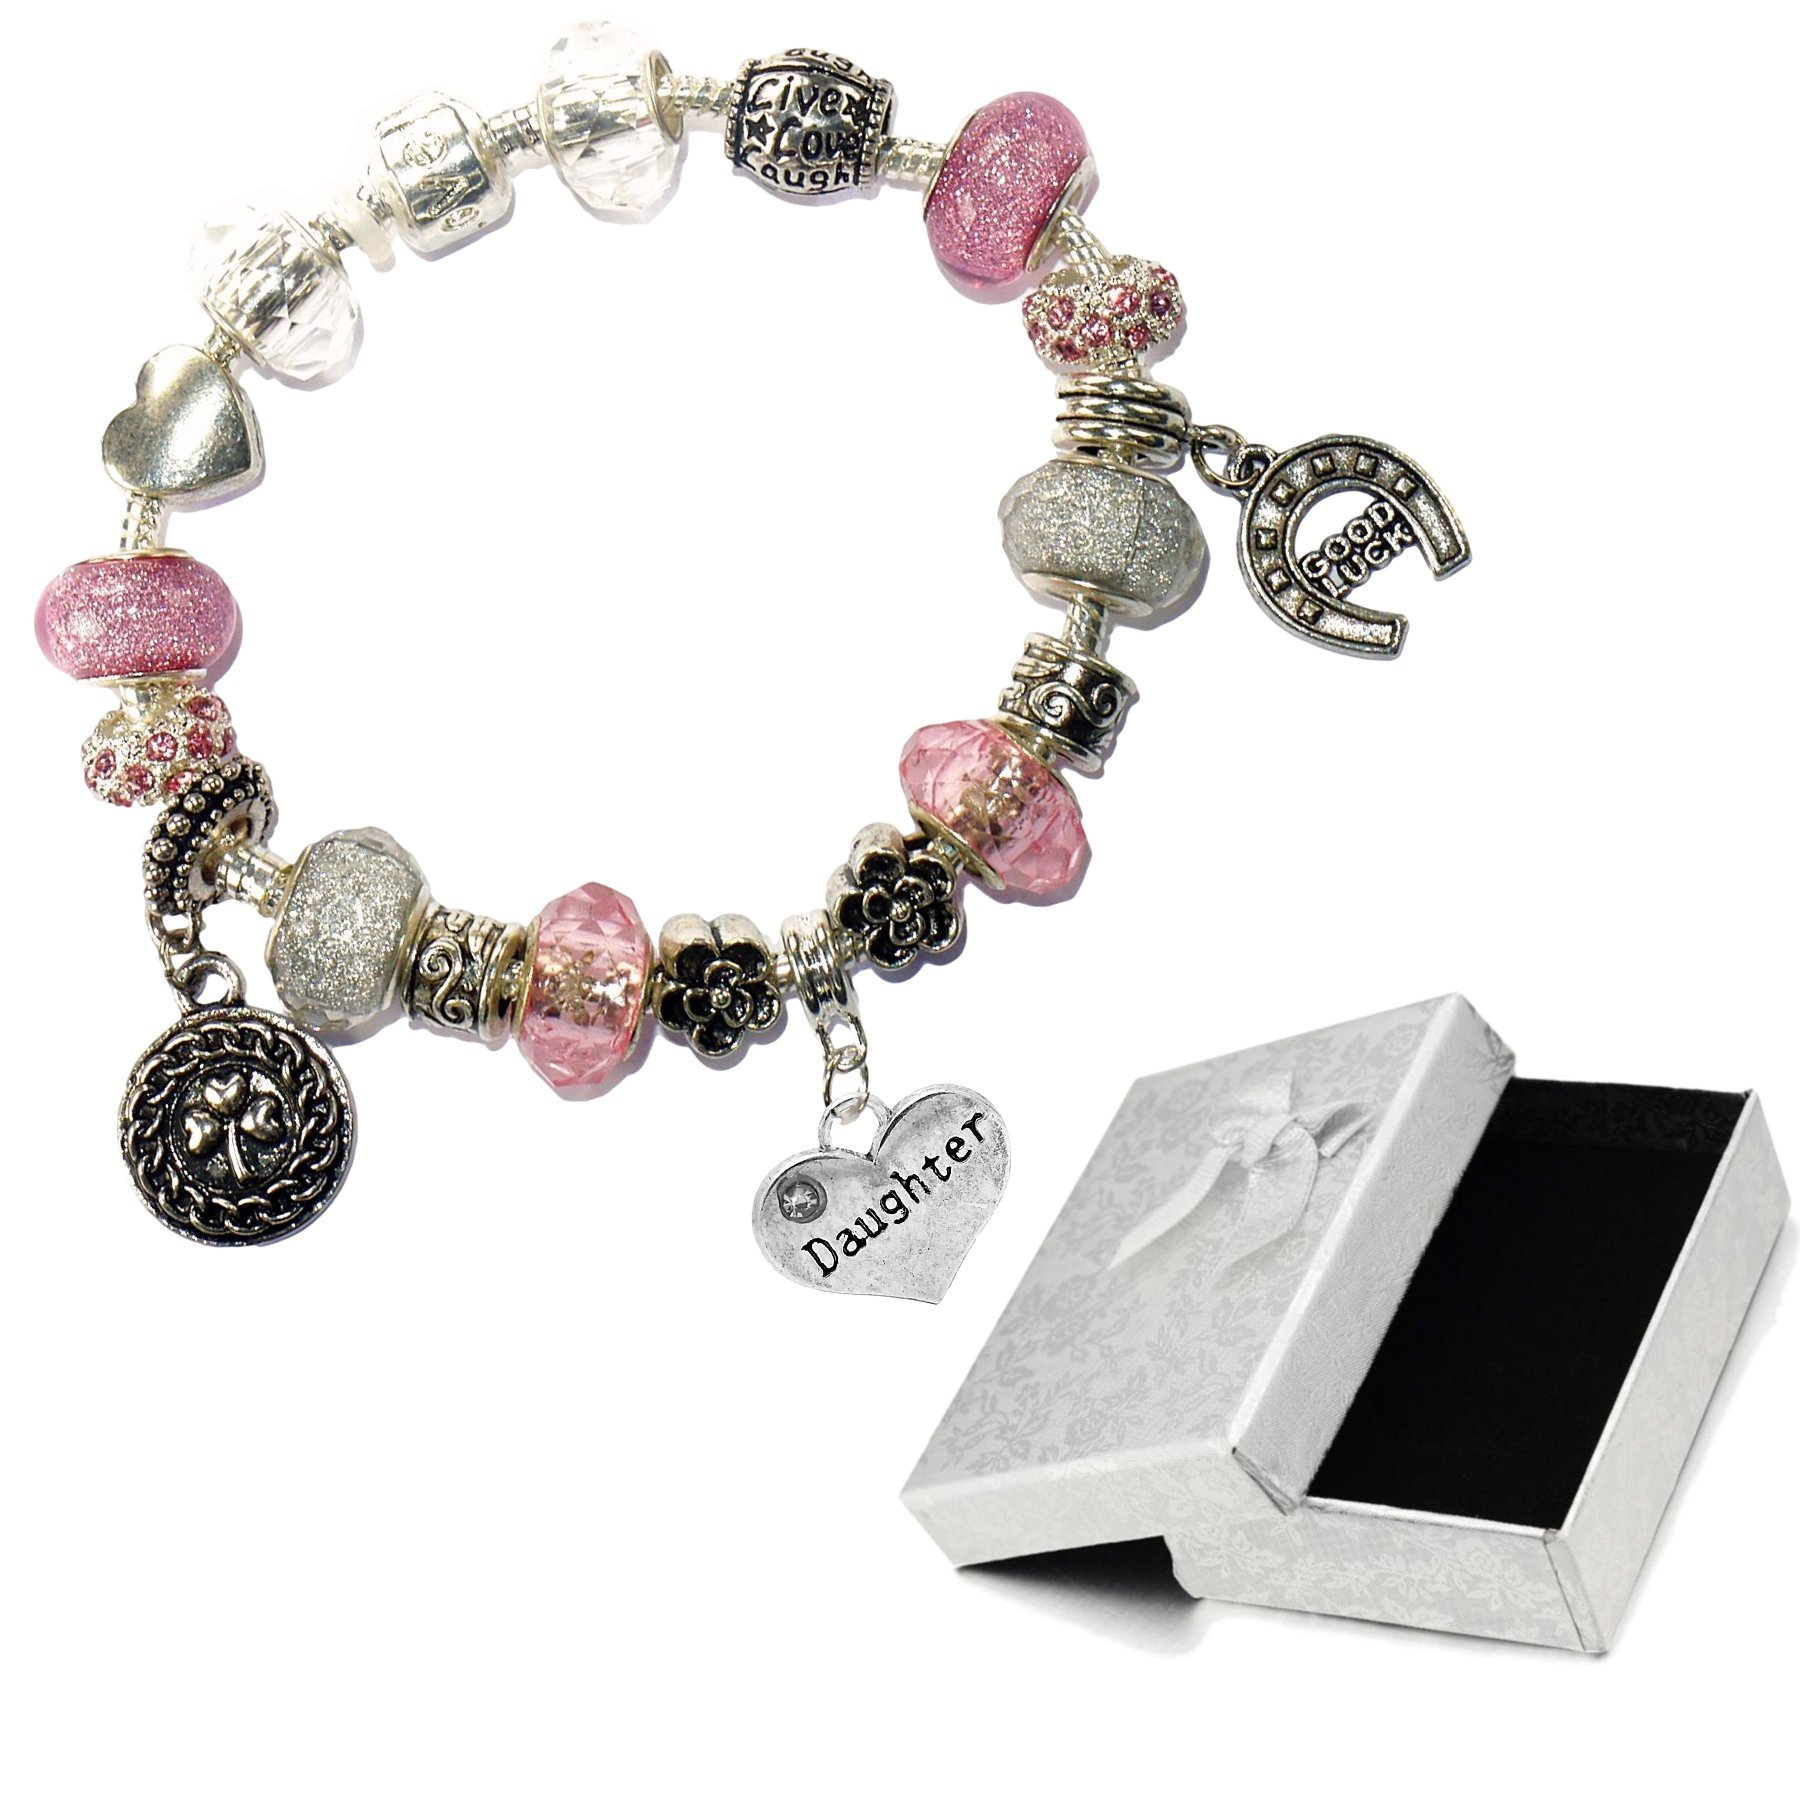 Charm Buddy Daughter Pink Silver Crystal Good Luck Pandora Style Bracelet With Charms Gift Box